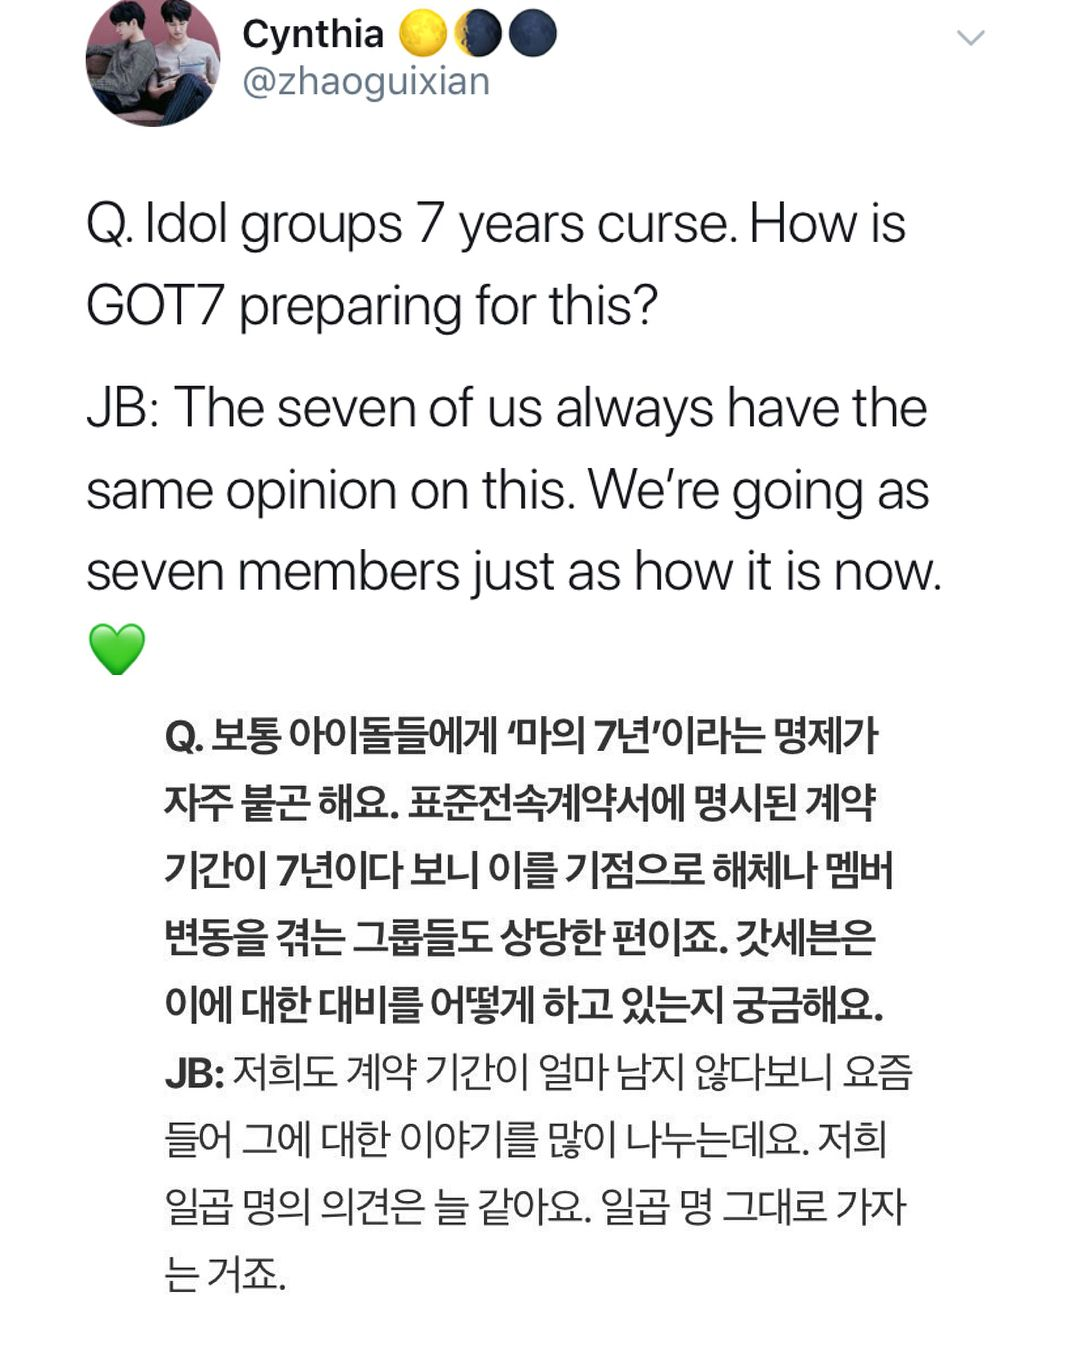 Idk How Much Got7 Need To Say They Will Stay Forever 7 And Keep Going On For Got7 Got7 Just Worry About Their Popularity In The Future Kpop Industry They Still